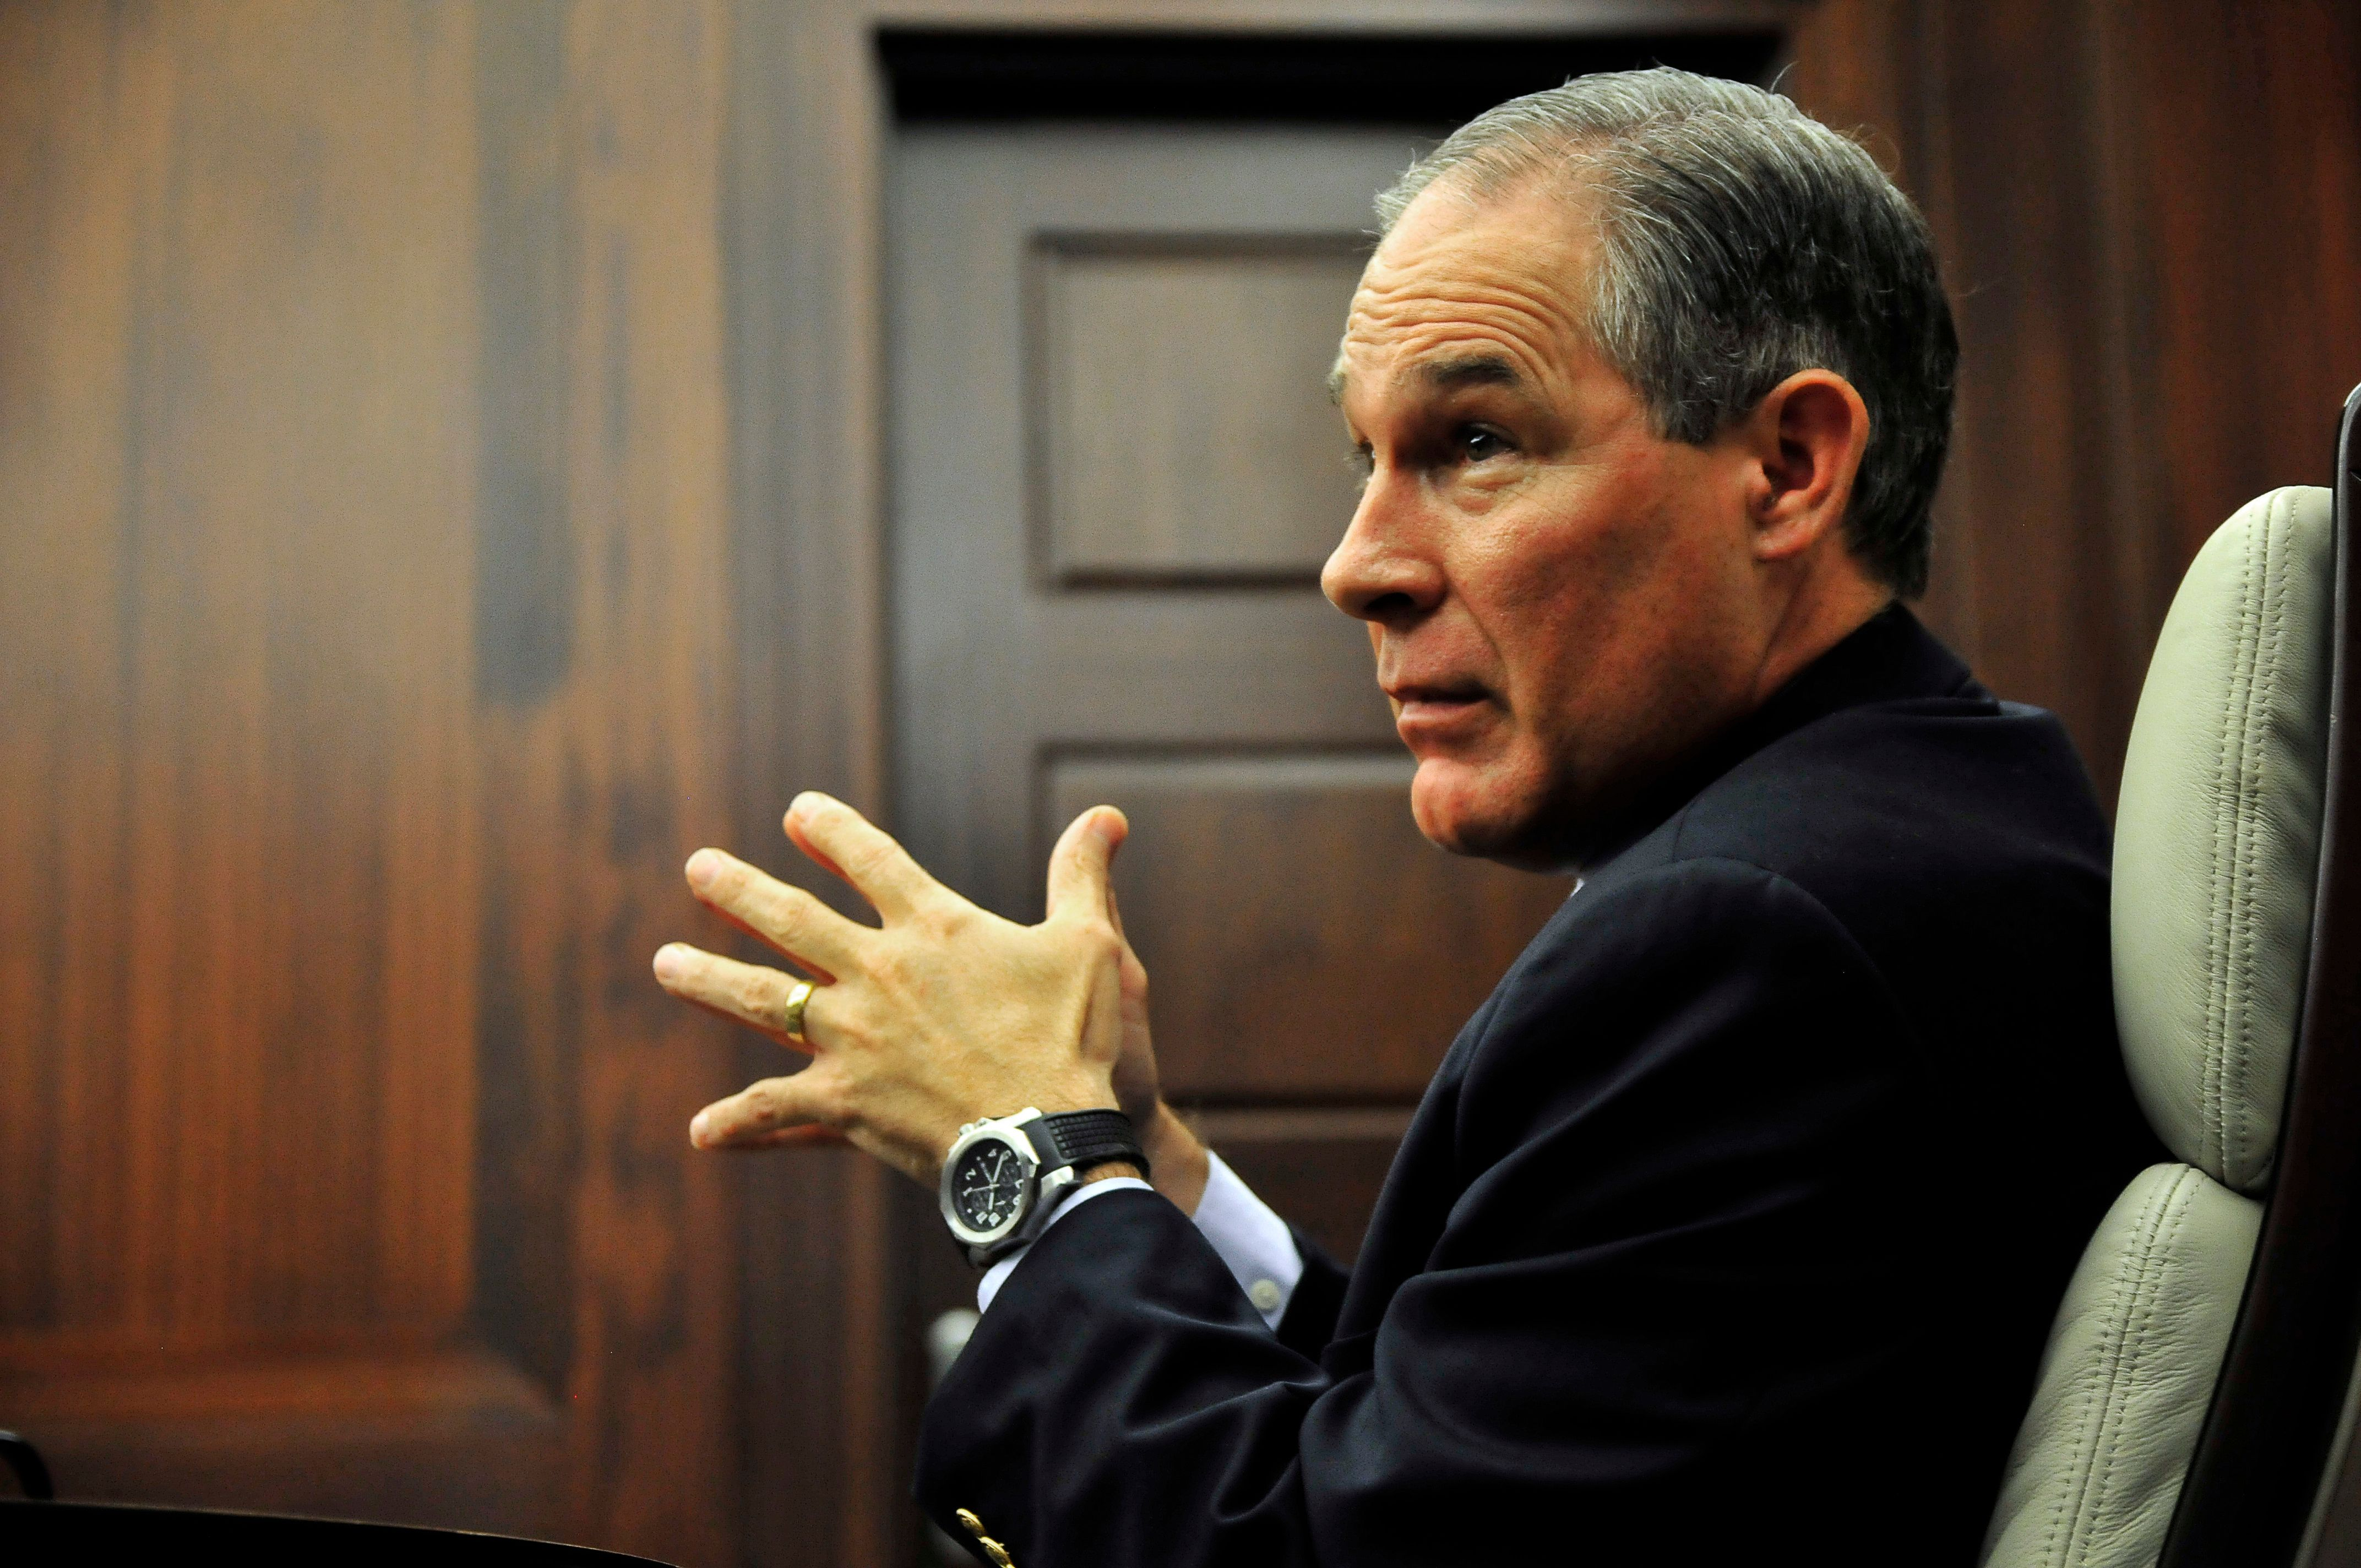 Oklahoma Attorney General Scott Pruitt in a meeting at his office in Oklahoma City, July 29, 2014. Picture taken July 29, 2014.   REUTERS/Nick Oxford